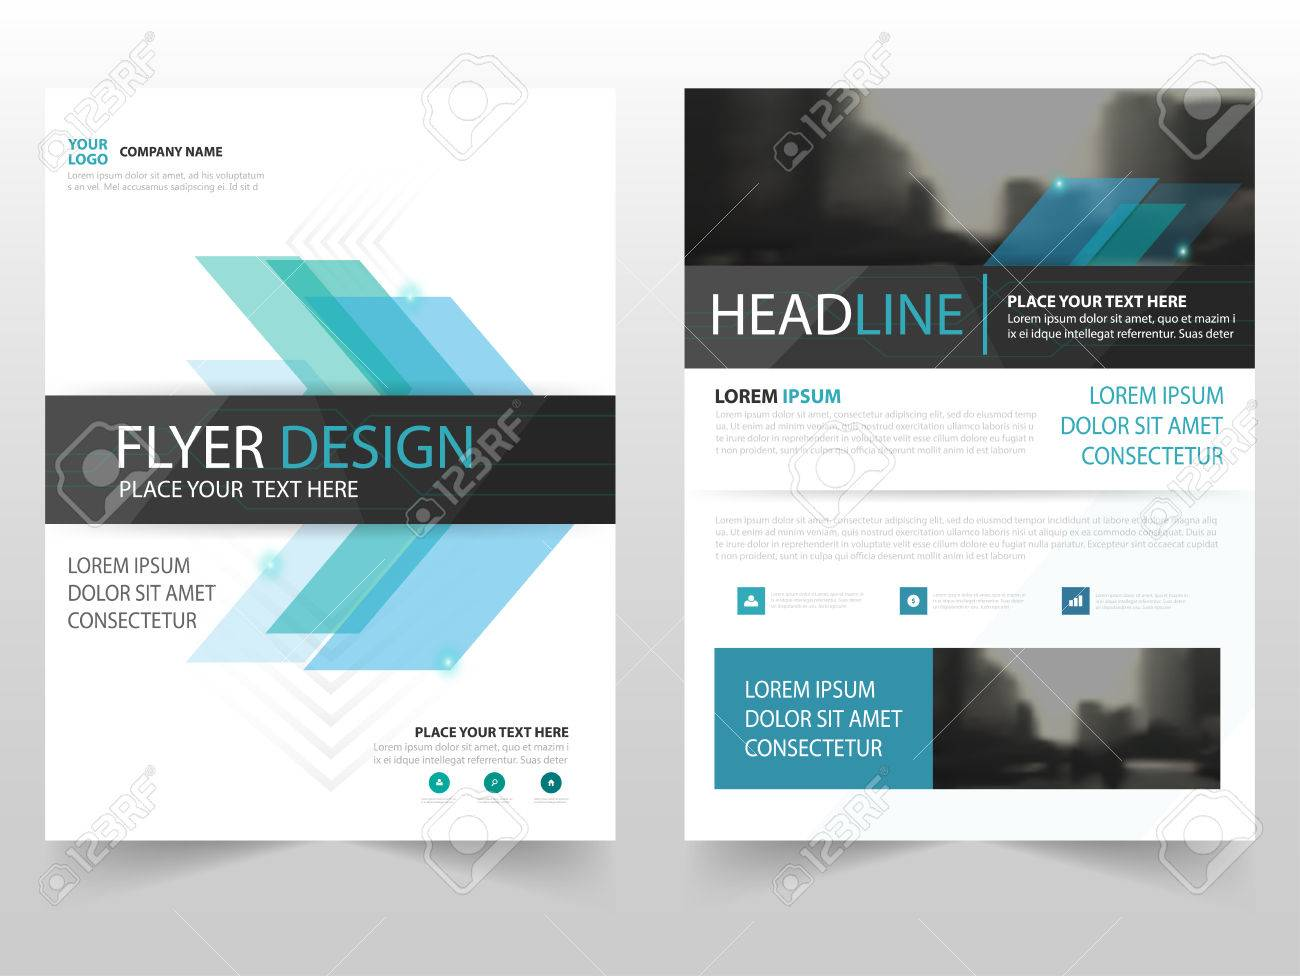 Blue abstract business Brochure Leaflet Flyer annual report template design, book cover layout design, abstract business presentation template, a4 size design - 63938073